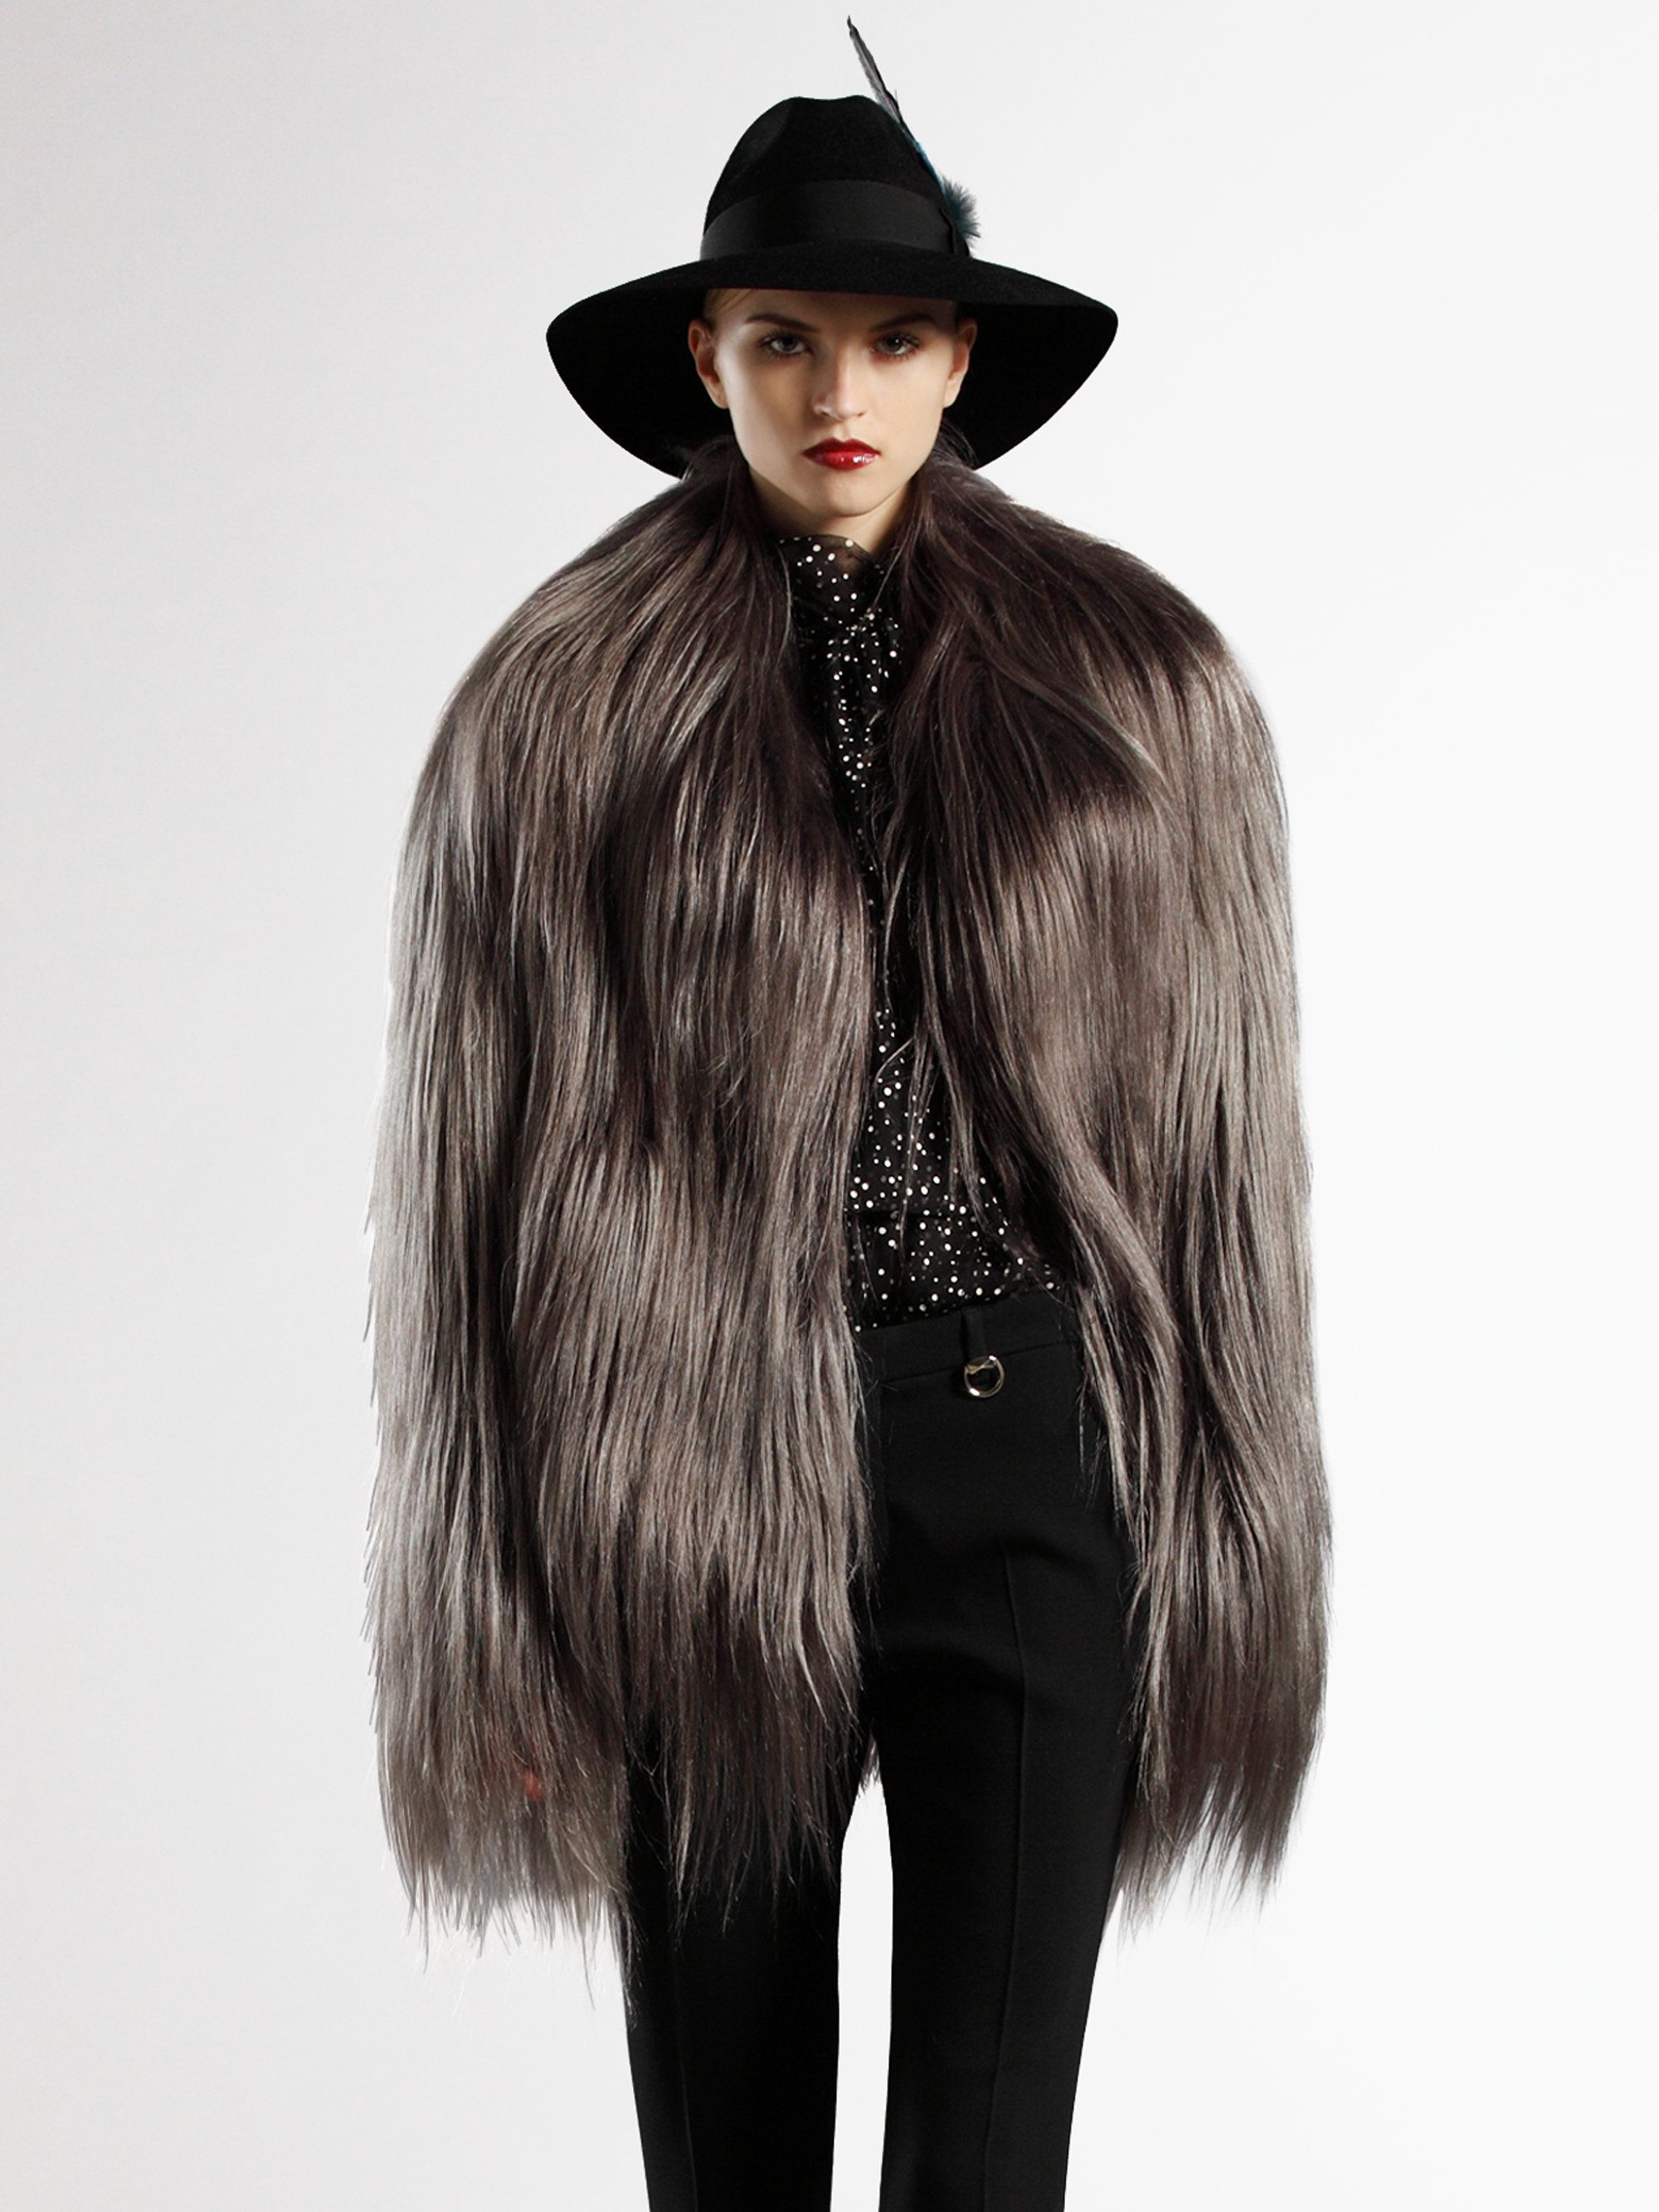 girls dressed in goat fur coats or jackets - Google Search | Furry ...